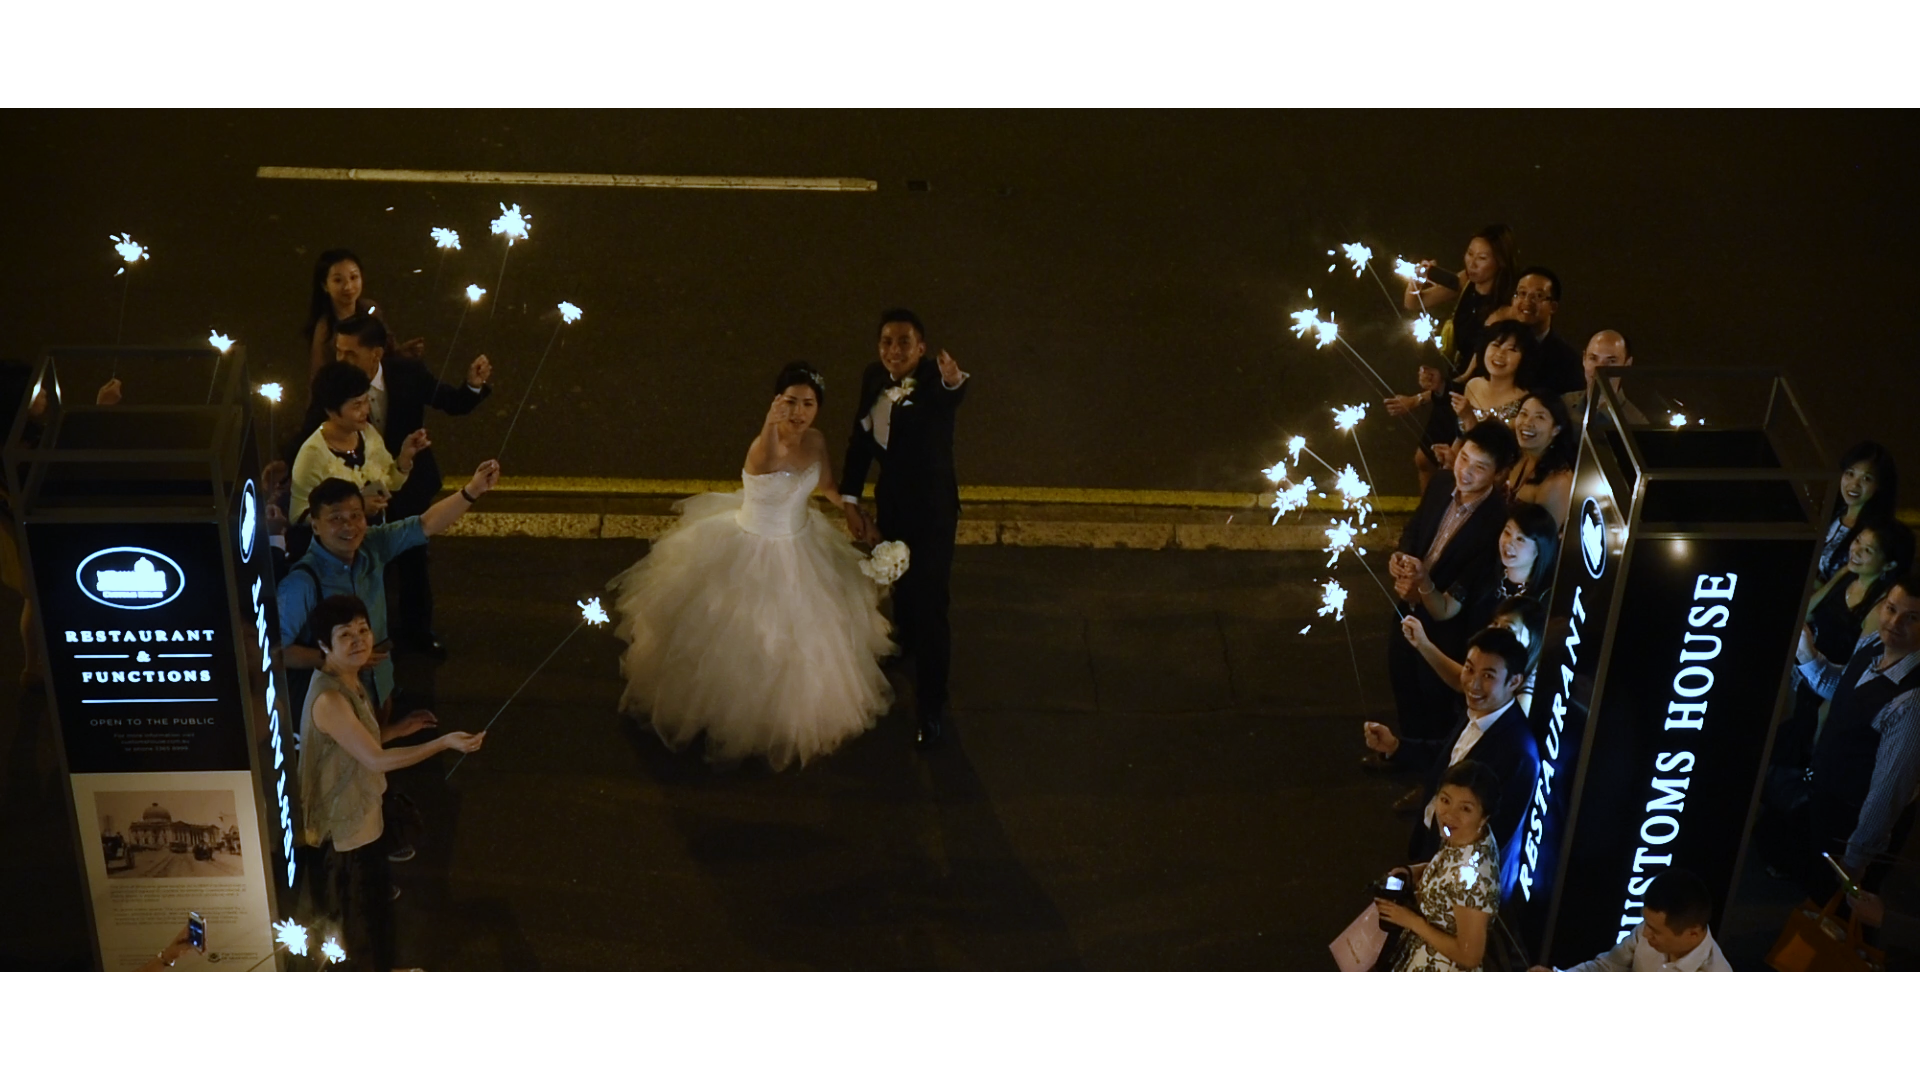 Pauline and Jack enter Customs House on the red carpet and greeted with guests waving sparklers